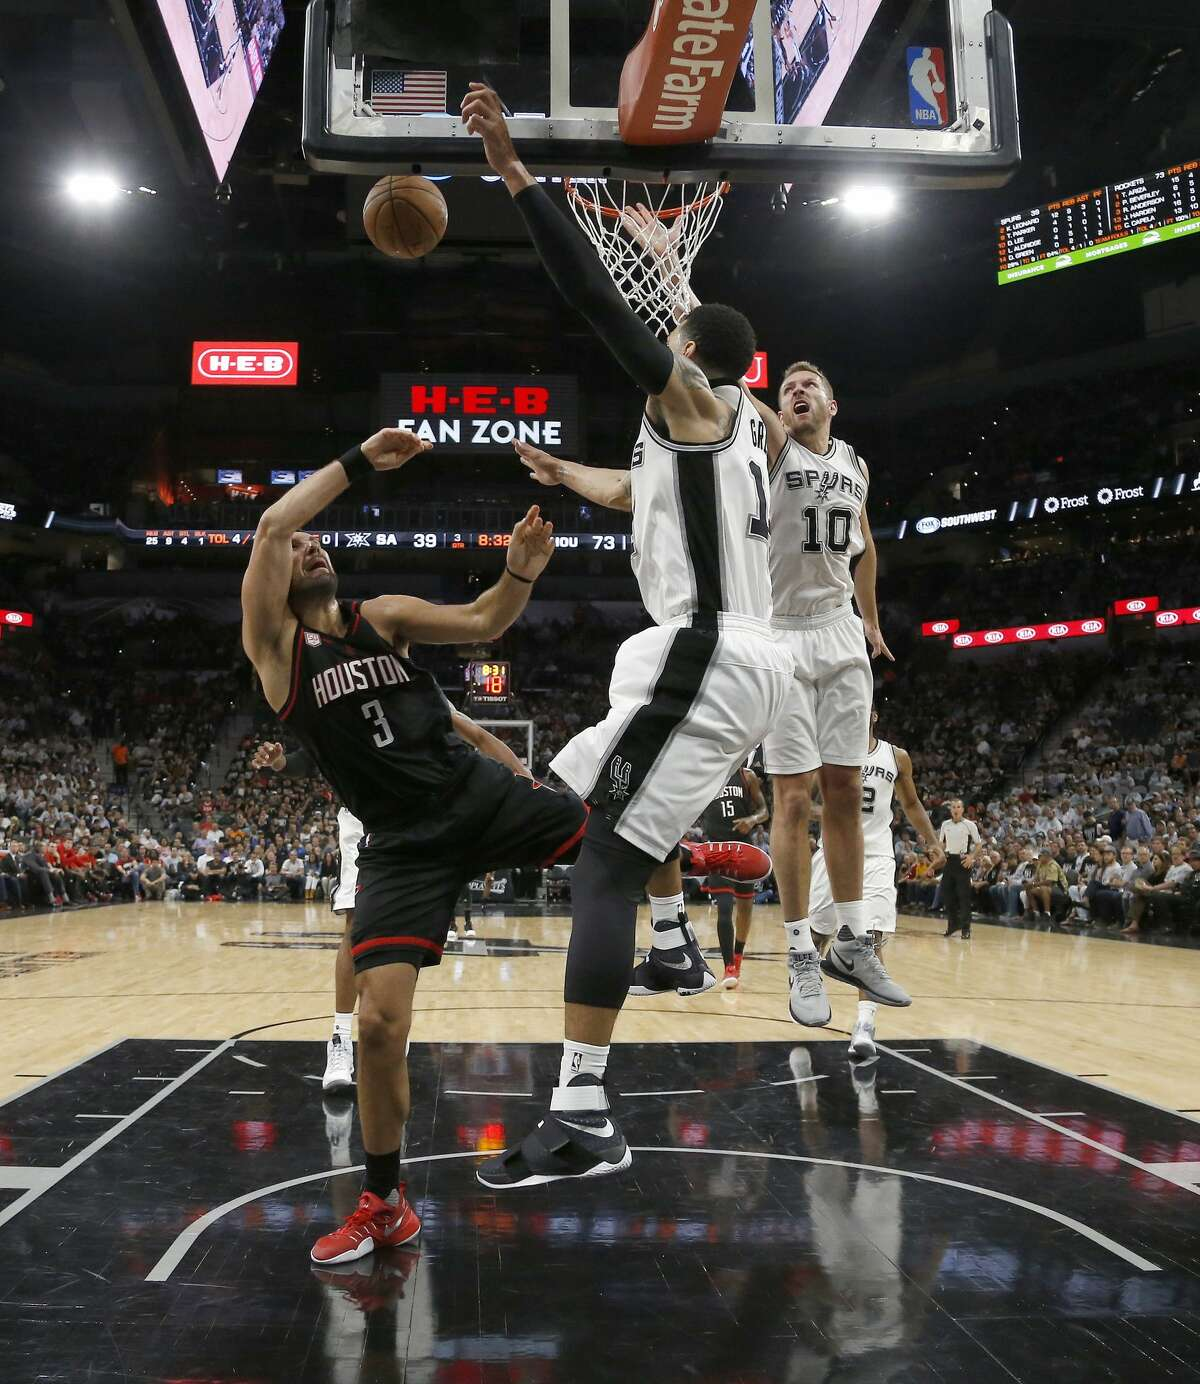 San Antonio Spurs guard Danny Green (14) tries to stop Houston Rockets forward Ryan Anderson (3) during the second half of Game 1 of the second-round of the Western Conference NBA playoffs at AT&T Center, Monday, May 1, 2017, in San Antonio. ( Karen Warren / Houston Chronicle )